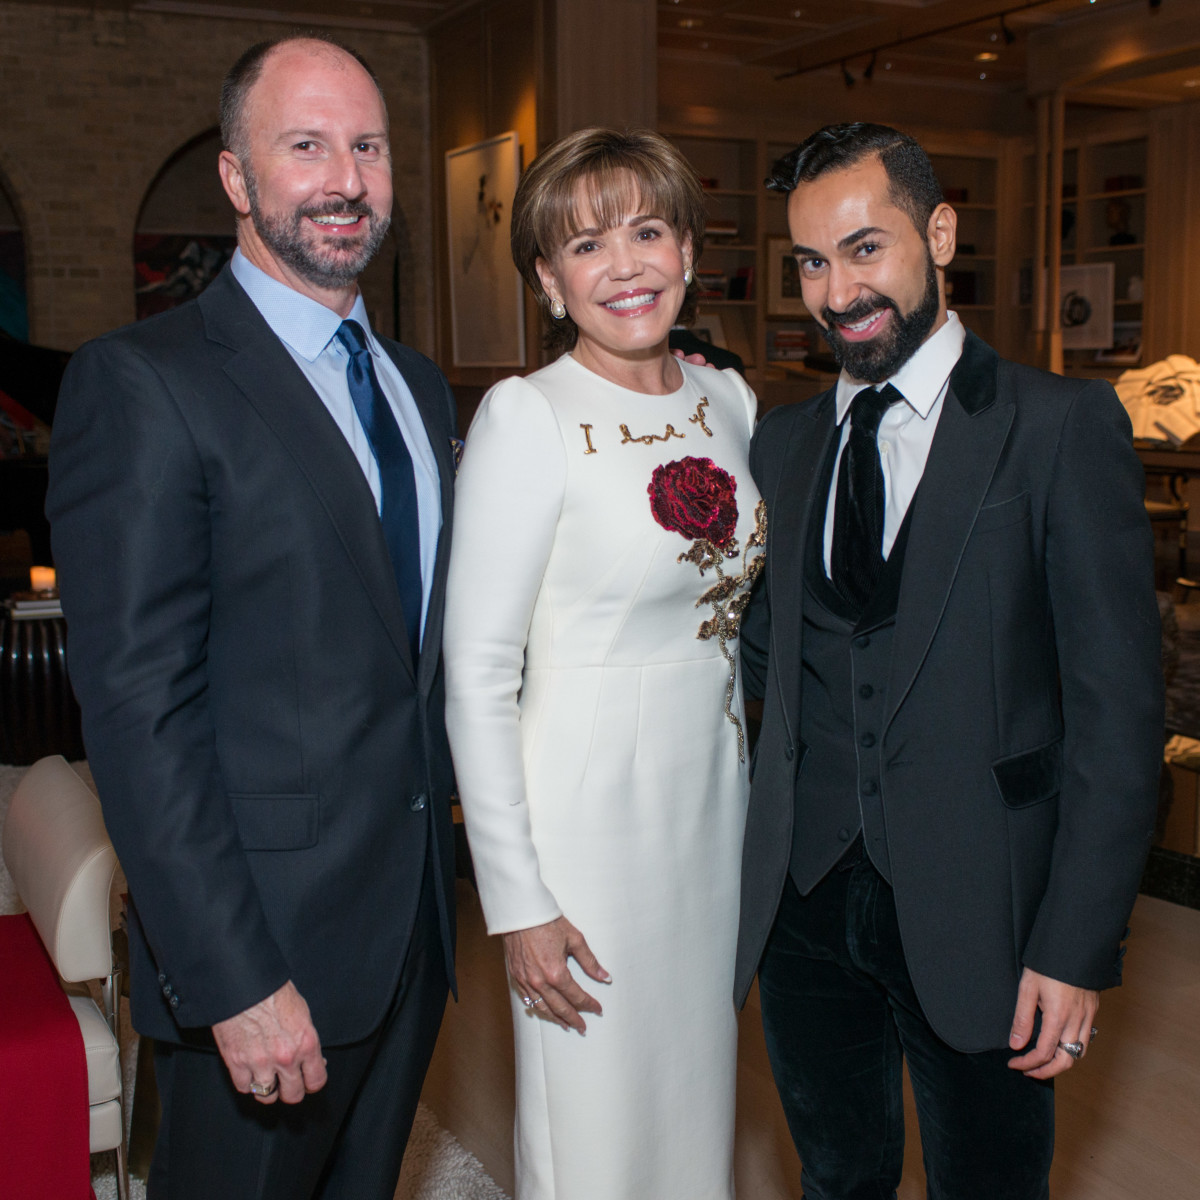 News, Shelby, Dolce & Gabbana dinner, Nov. 2015, Tony Bradfield, Hallie Vanderhider Fady Armanious